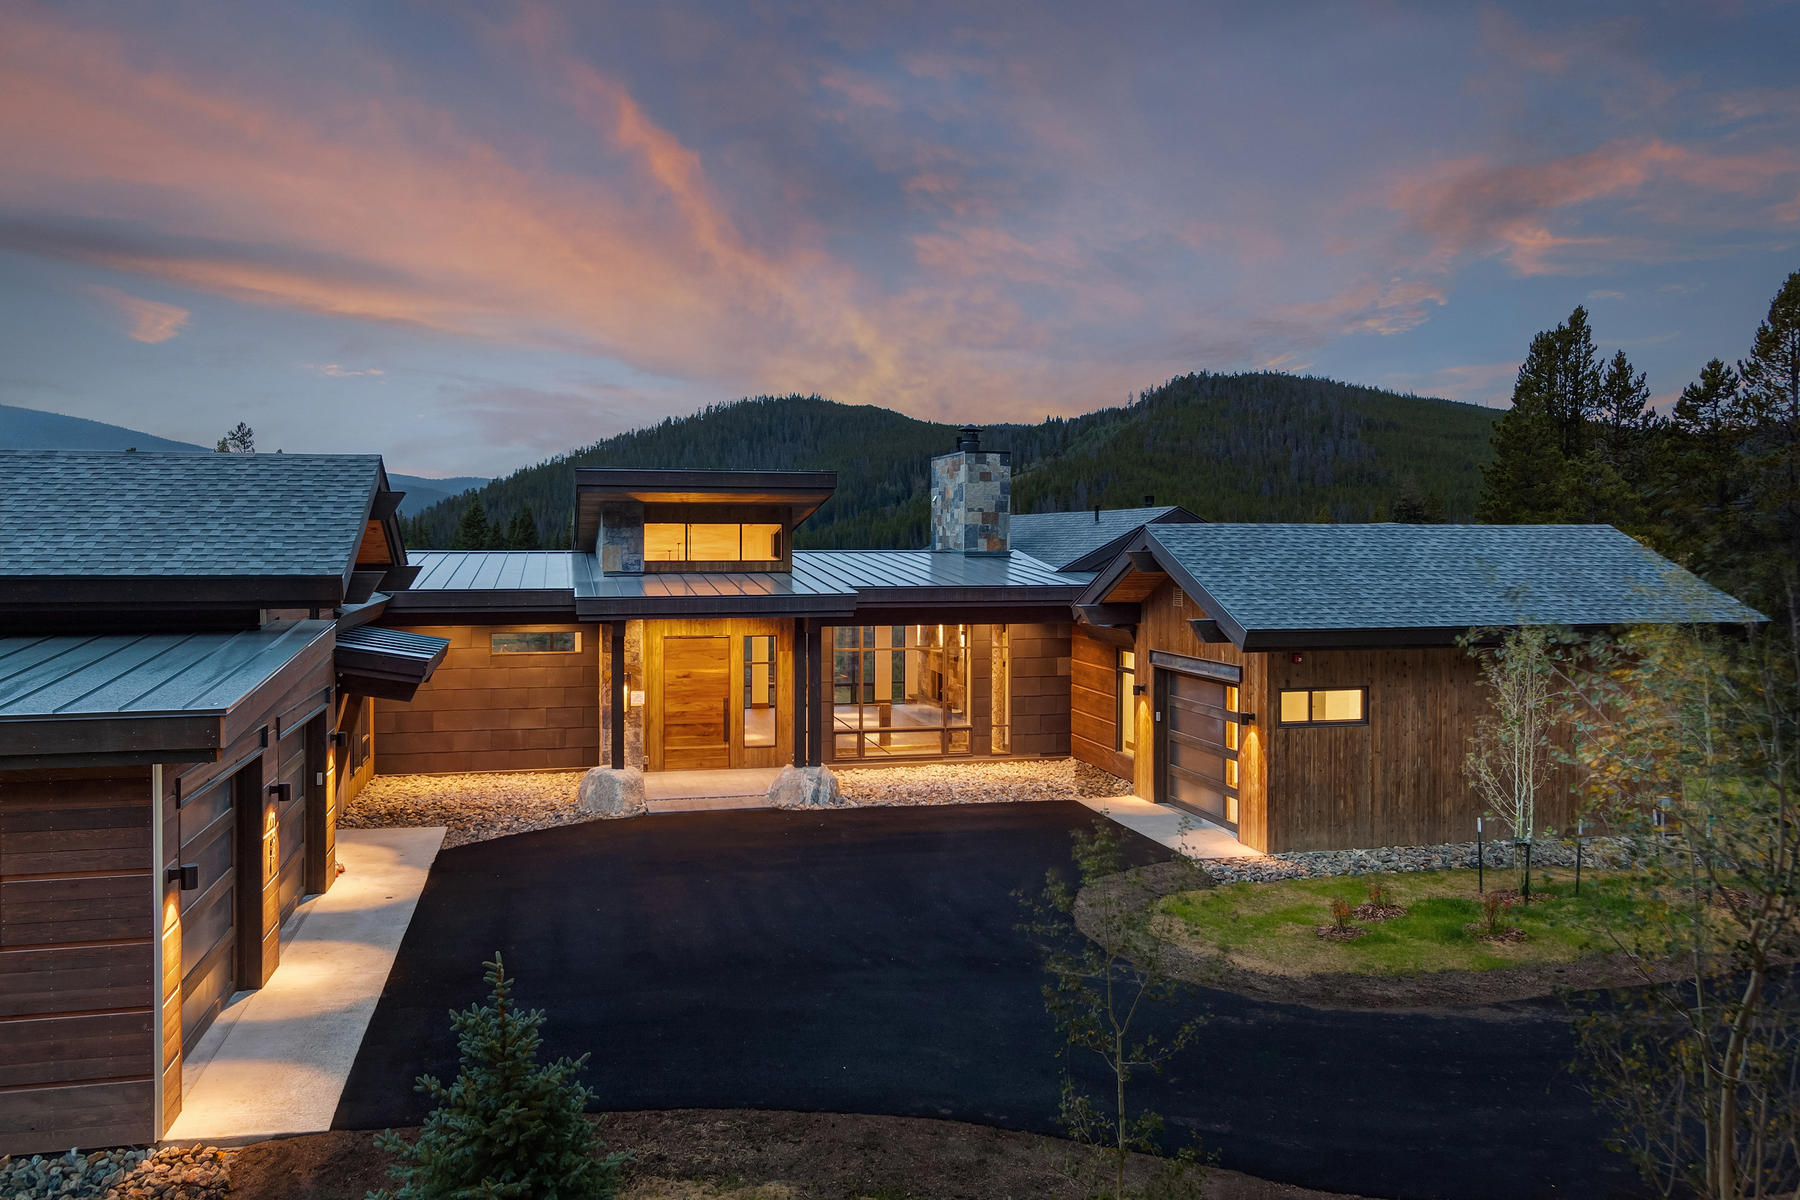 Single Family Home for Active at Muggins Gulch 164 Imperial Way Breckenridge, Colorado 80424 United States